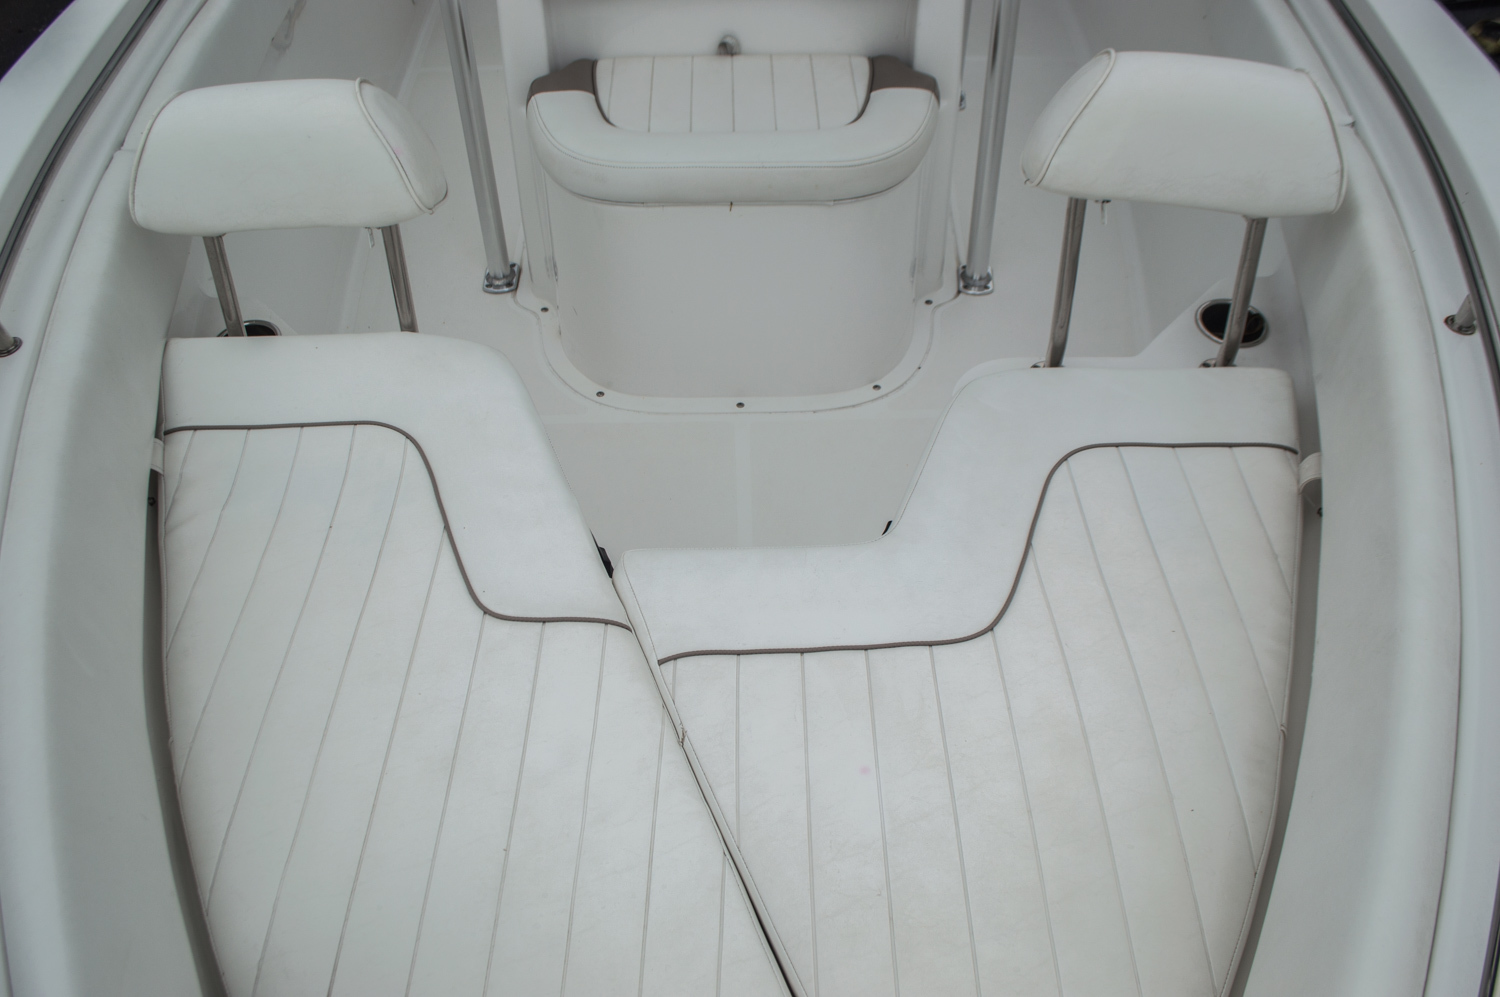 Thumbnail 17 for Used 2012 Sea Hunt 211 Ultra boat for sale in West Palm Beach, FL